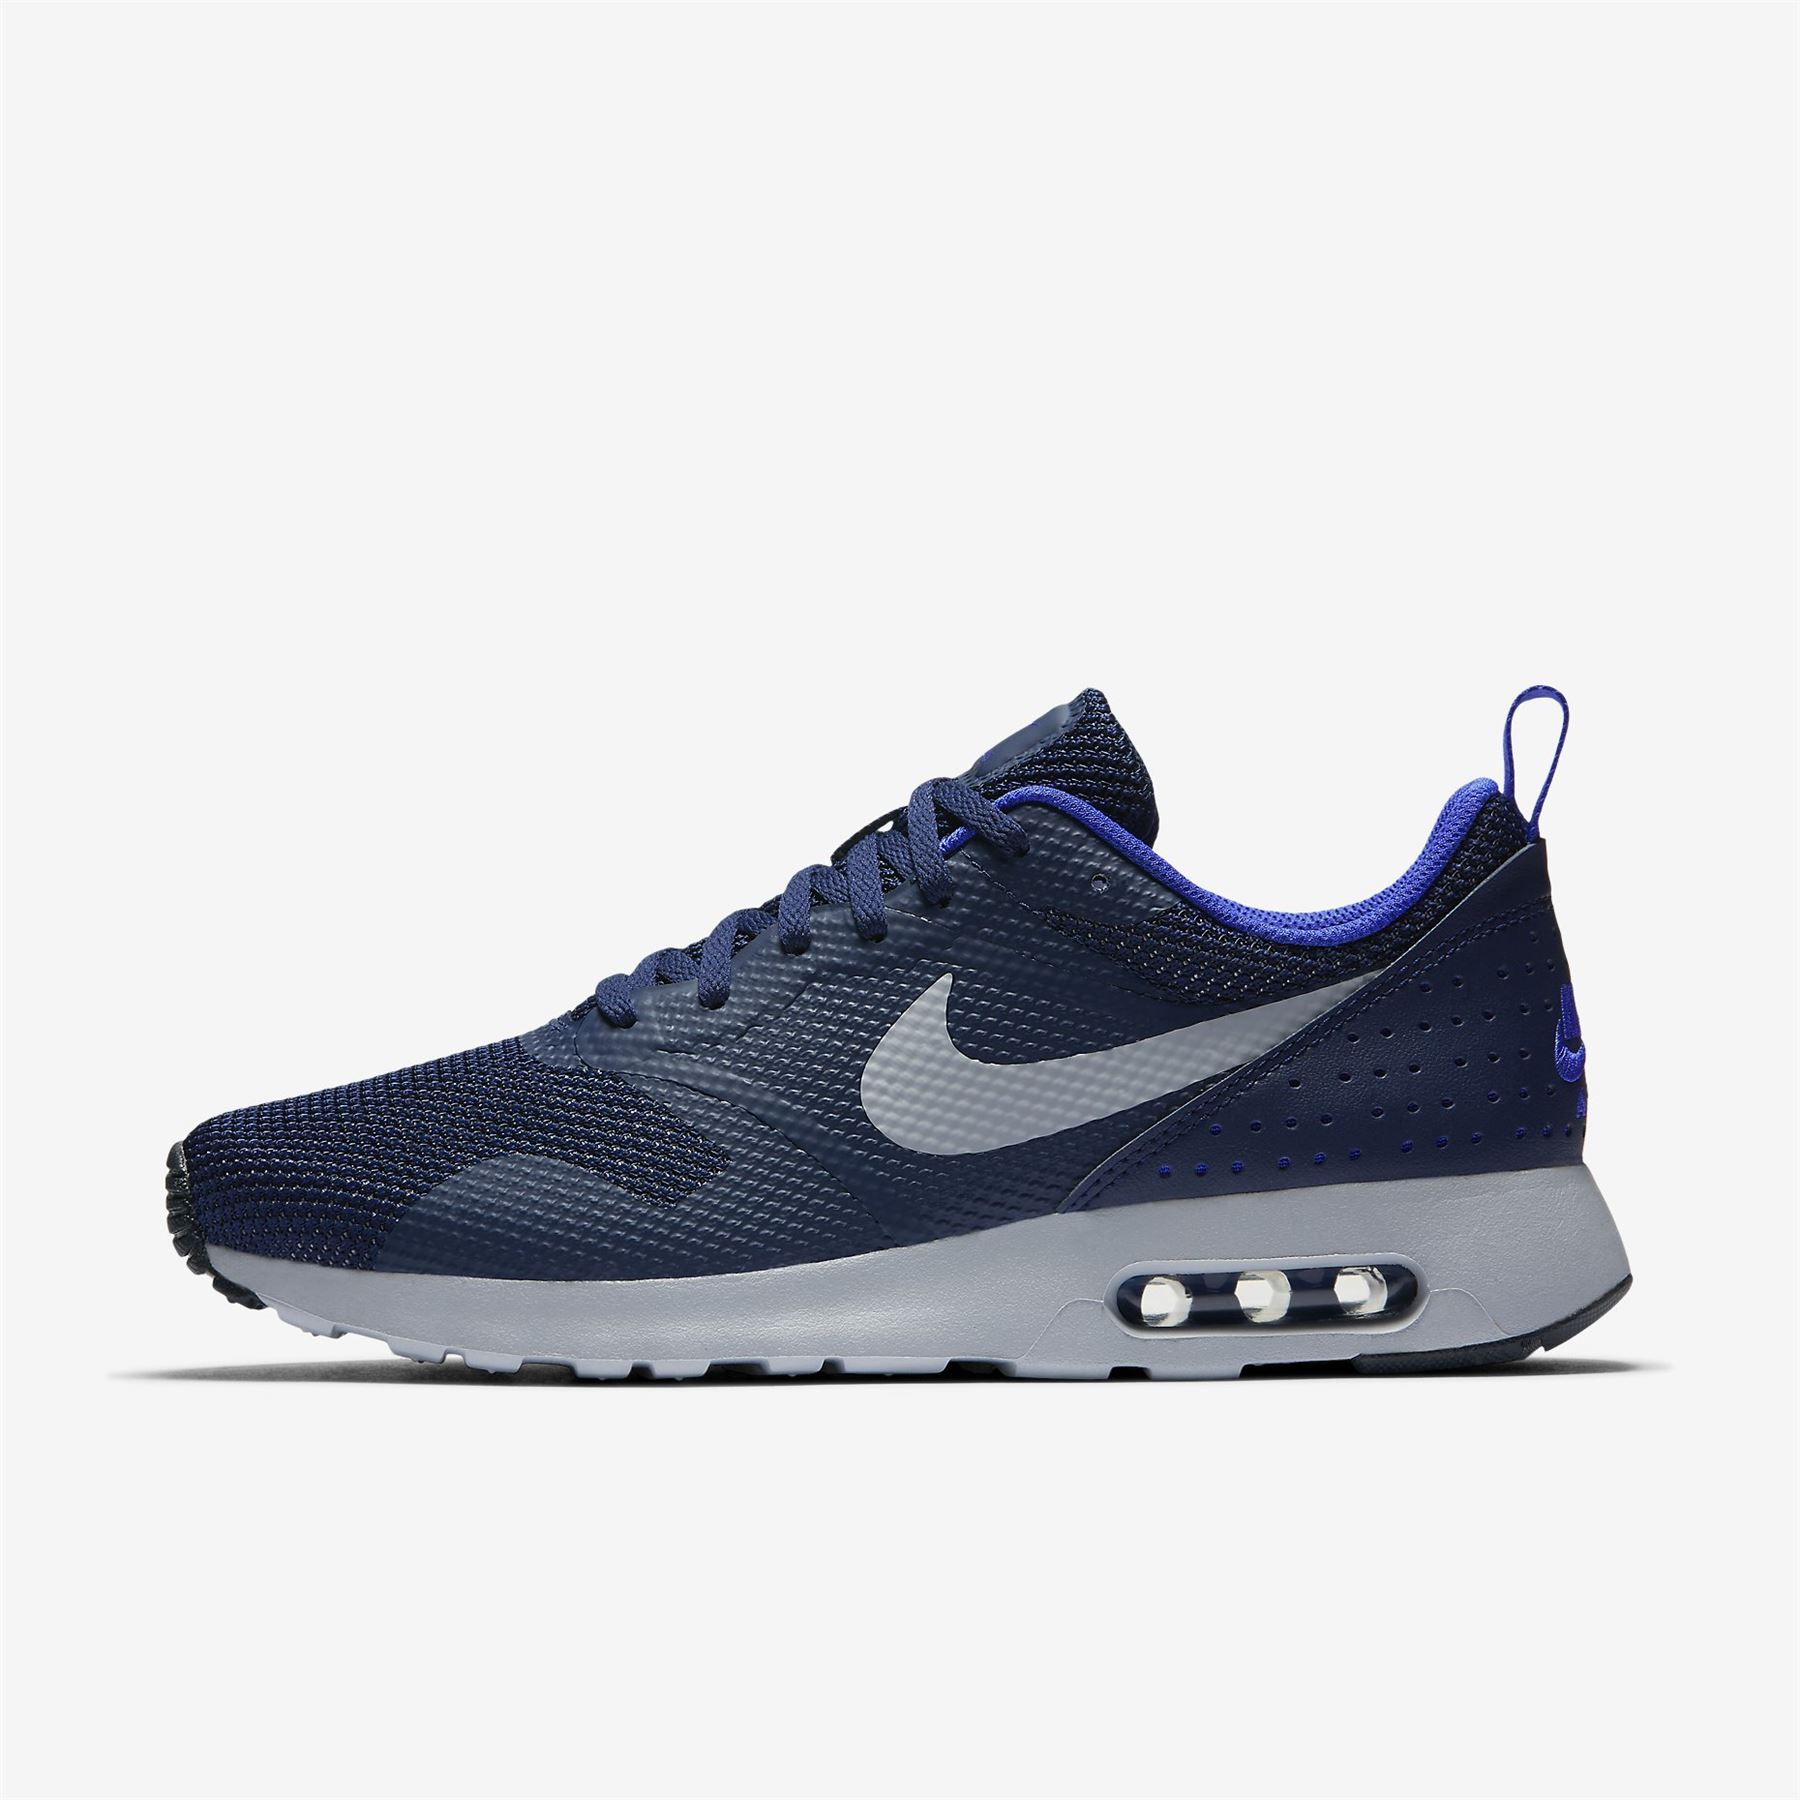 best sneakers adefa f8e95 Details about NIKE AIR MAX TAVAS BLUE/GREY 705149 408 MEN'S UK 6-11